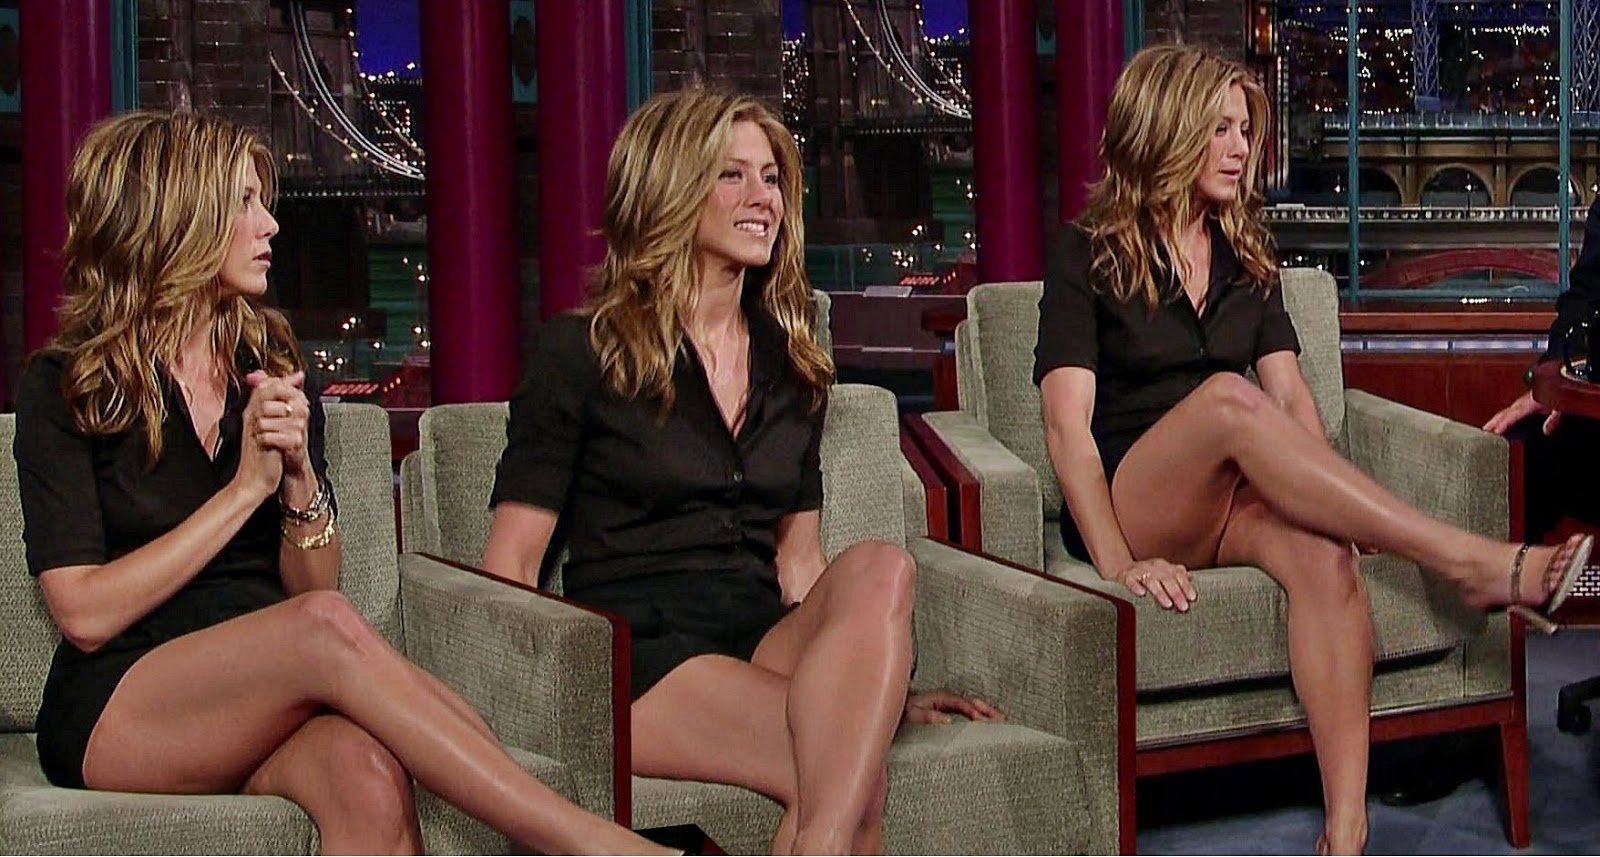 Jennifer aniston's emmys outfit was her best lbd yet